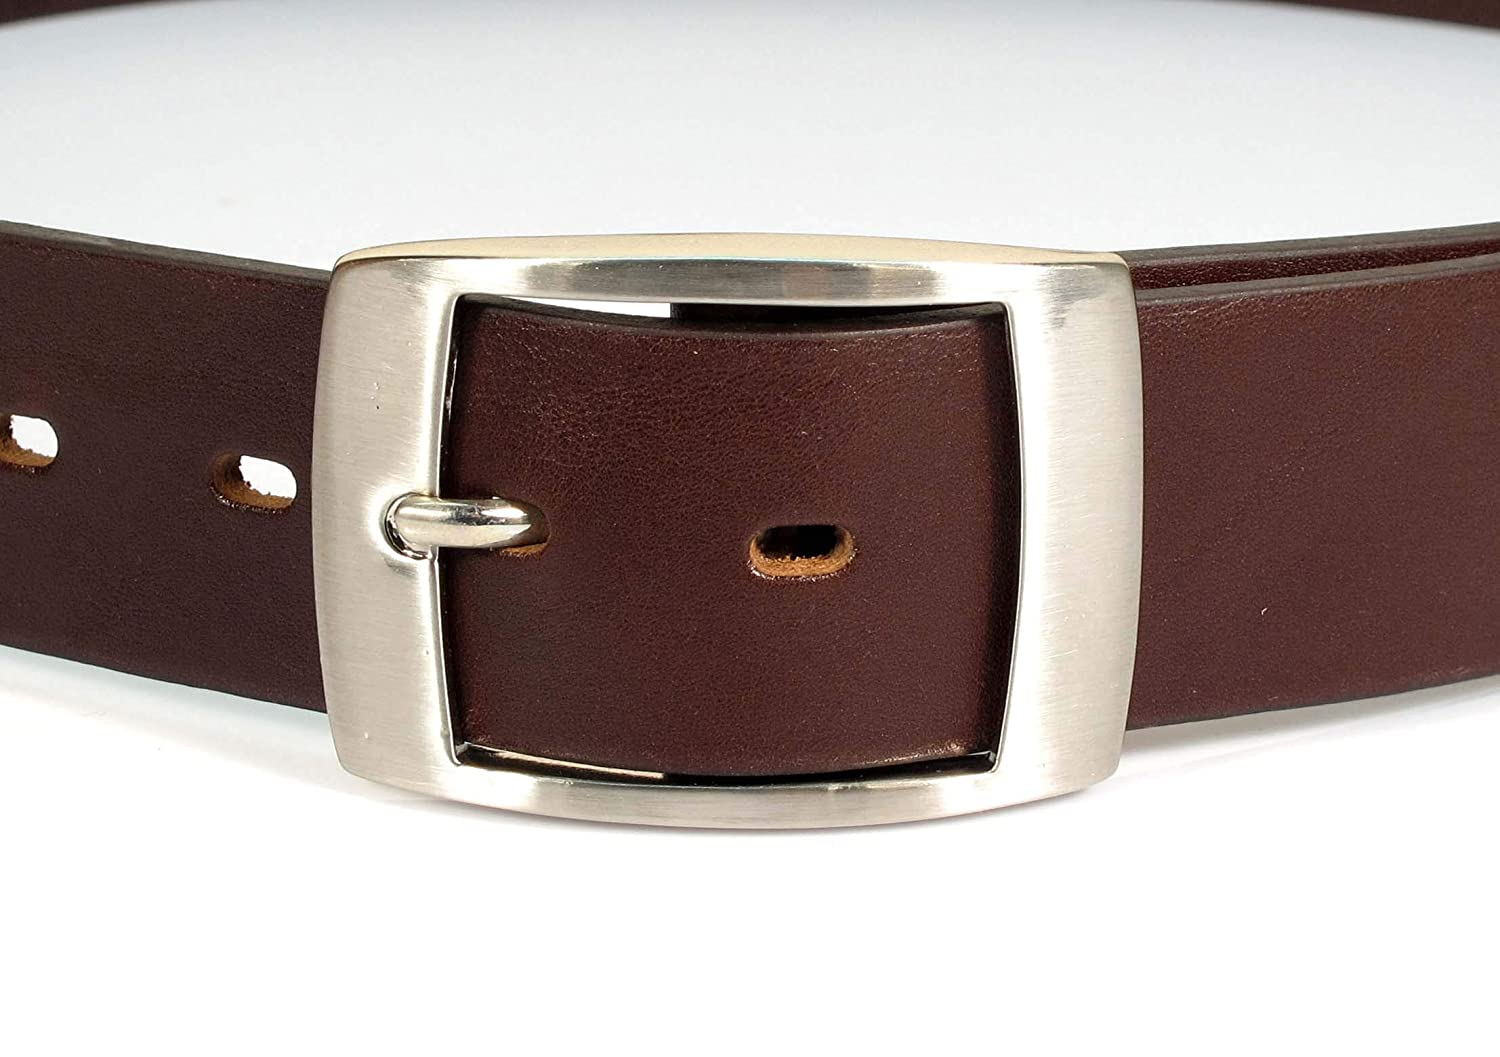 TW6 Womens Real Genuine Leather Belt Black Brown White 1.5 Wide S-XL Casual Jeans